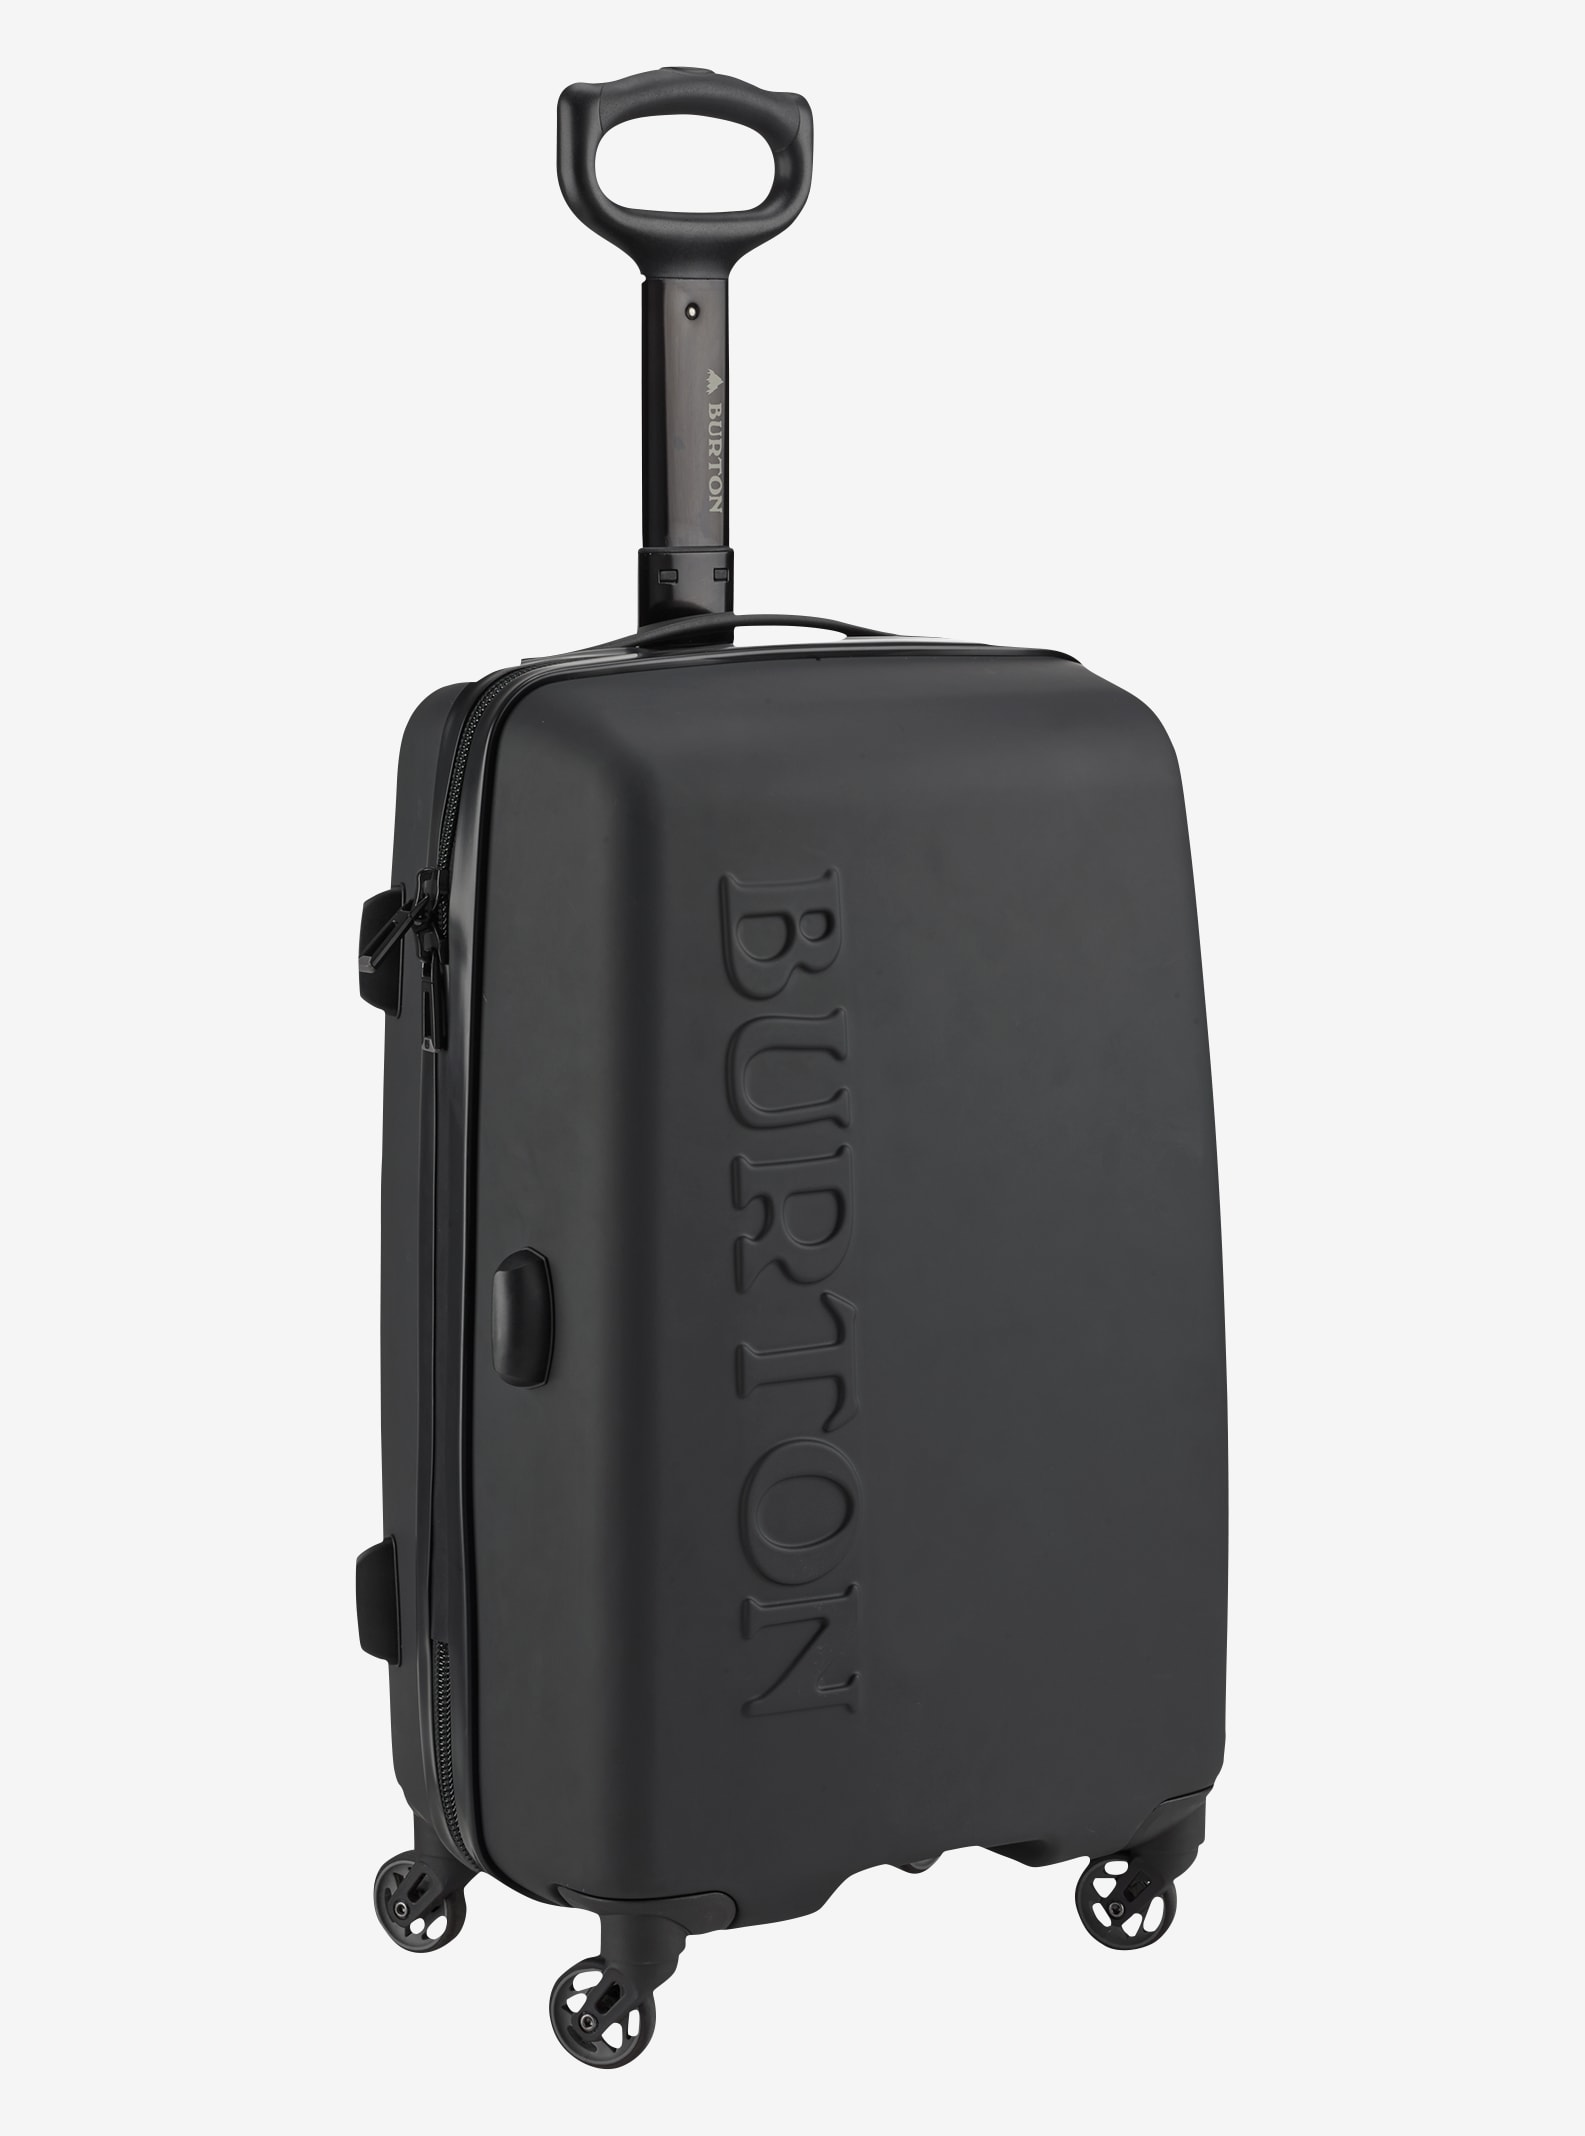 Burton Air 20 Travel Bag shown in Blackout